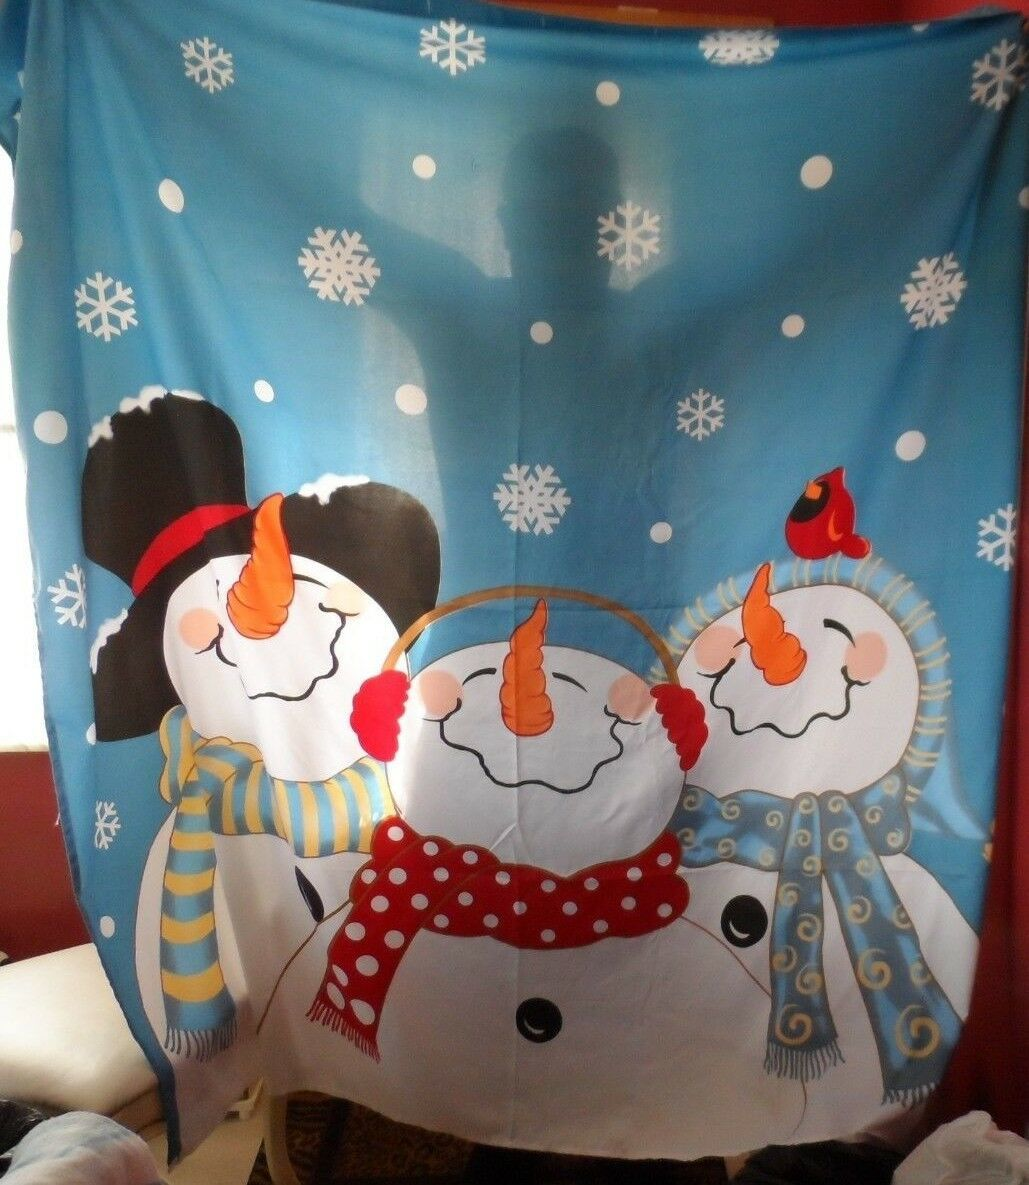 Christmas winter snowman decorative shower curtain and  towels